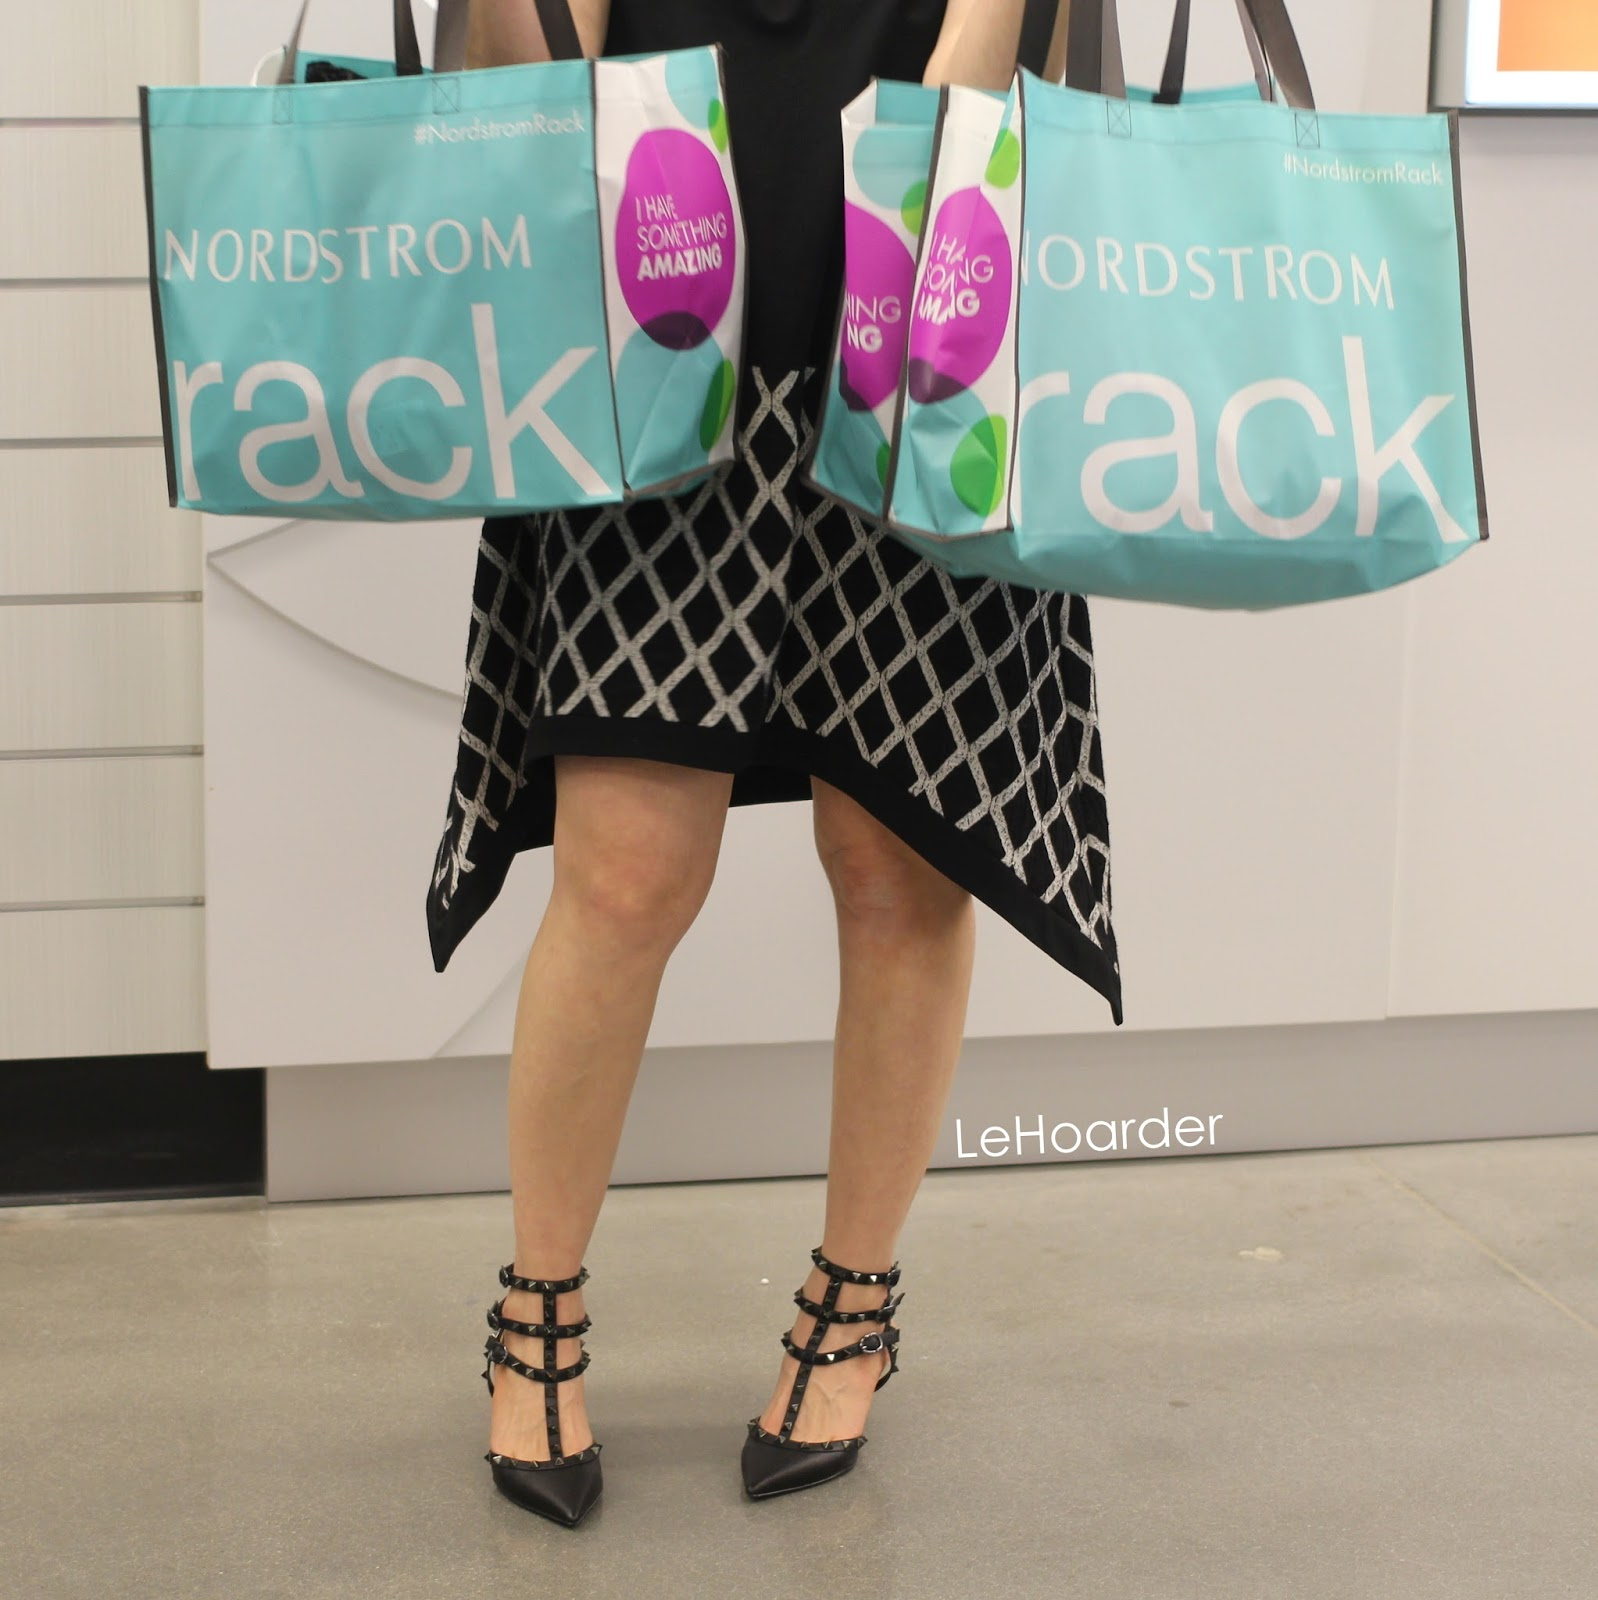 4d4c051b7f So let me give you a quick tutorial on how to shop a Rack opening. First  you head to the accessories. I asked if they had any designer bags (didn t)  so I ...